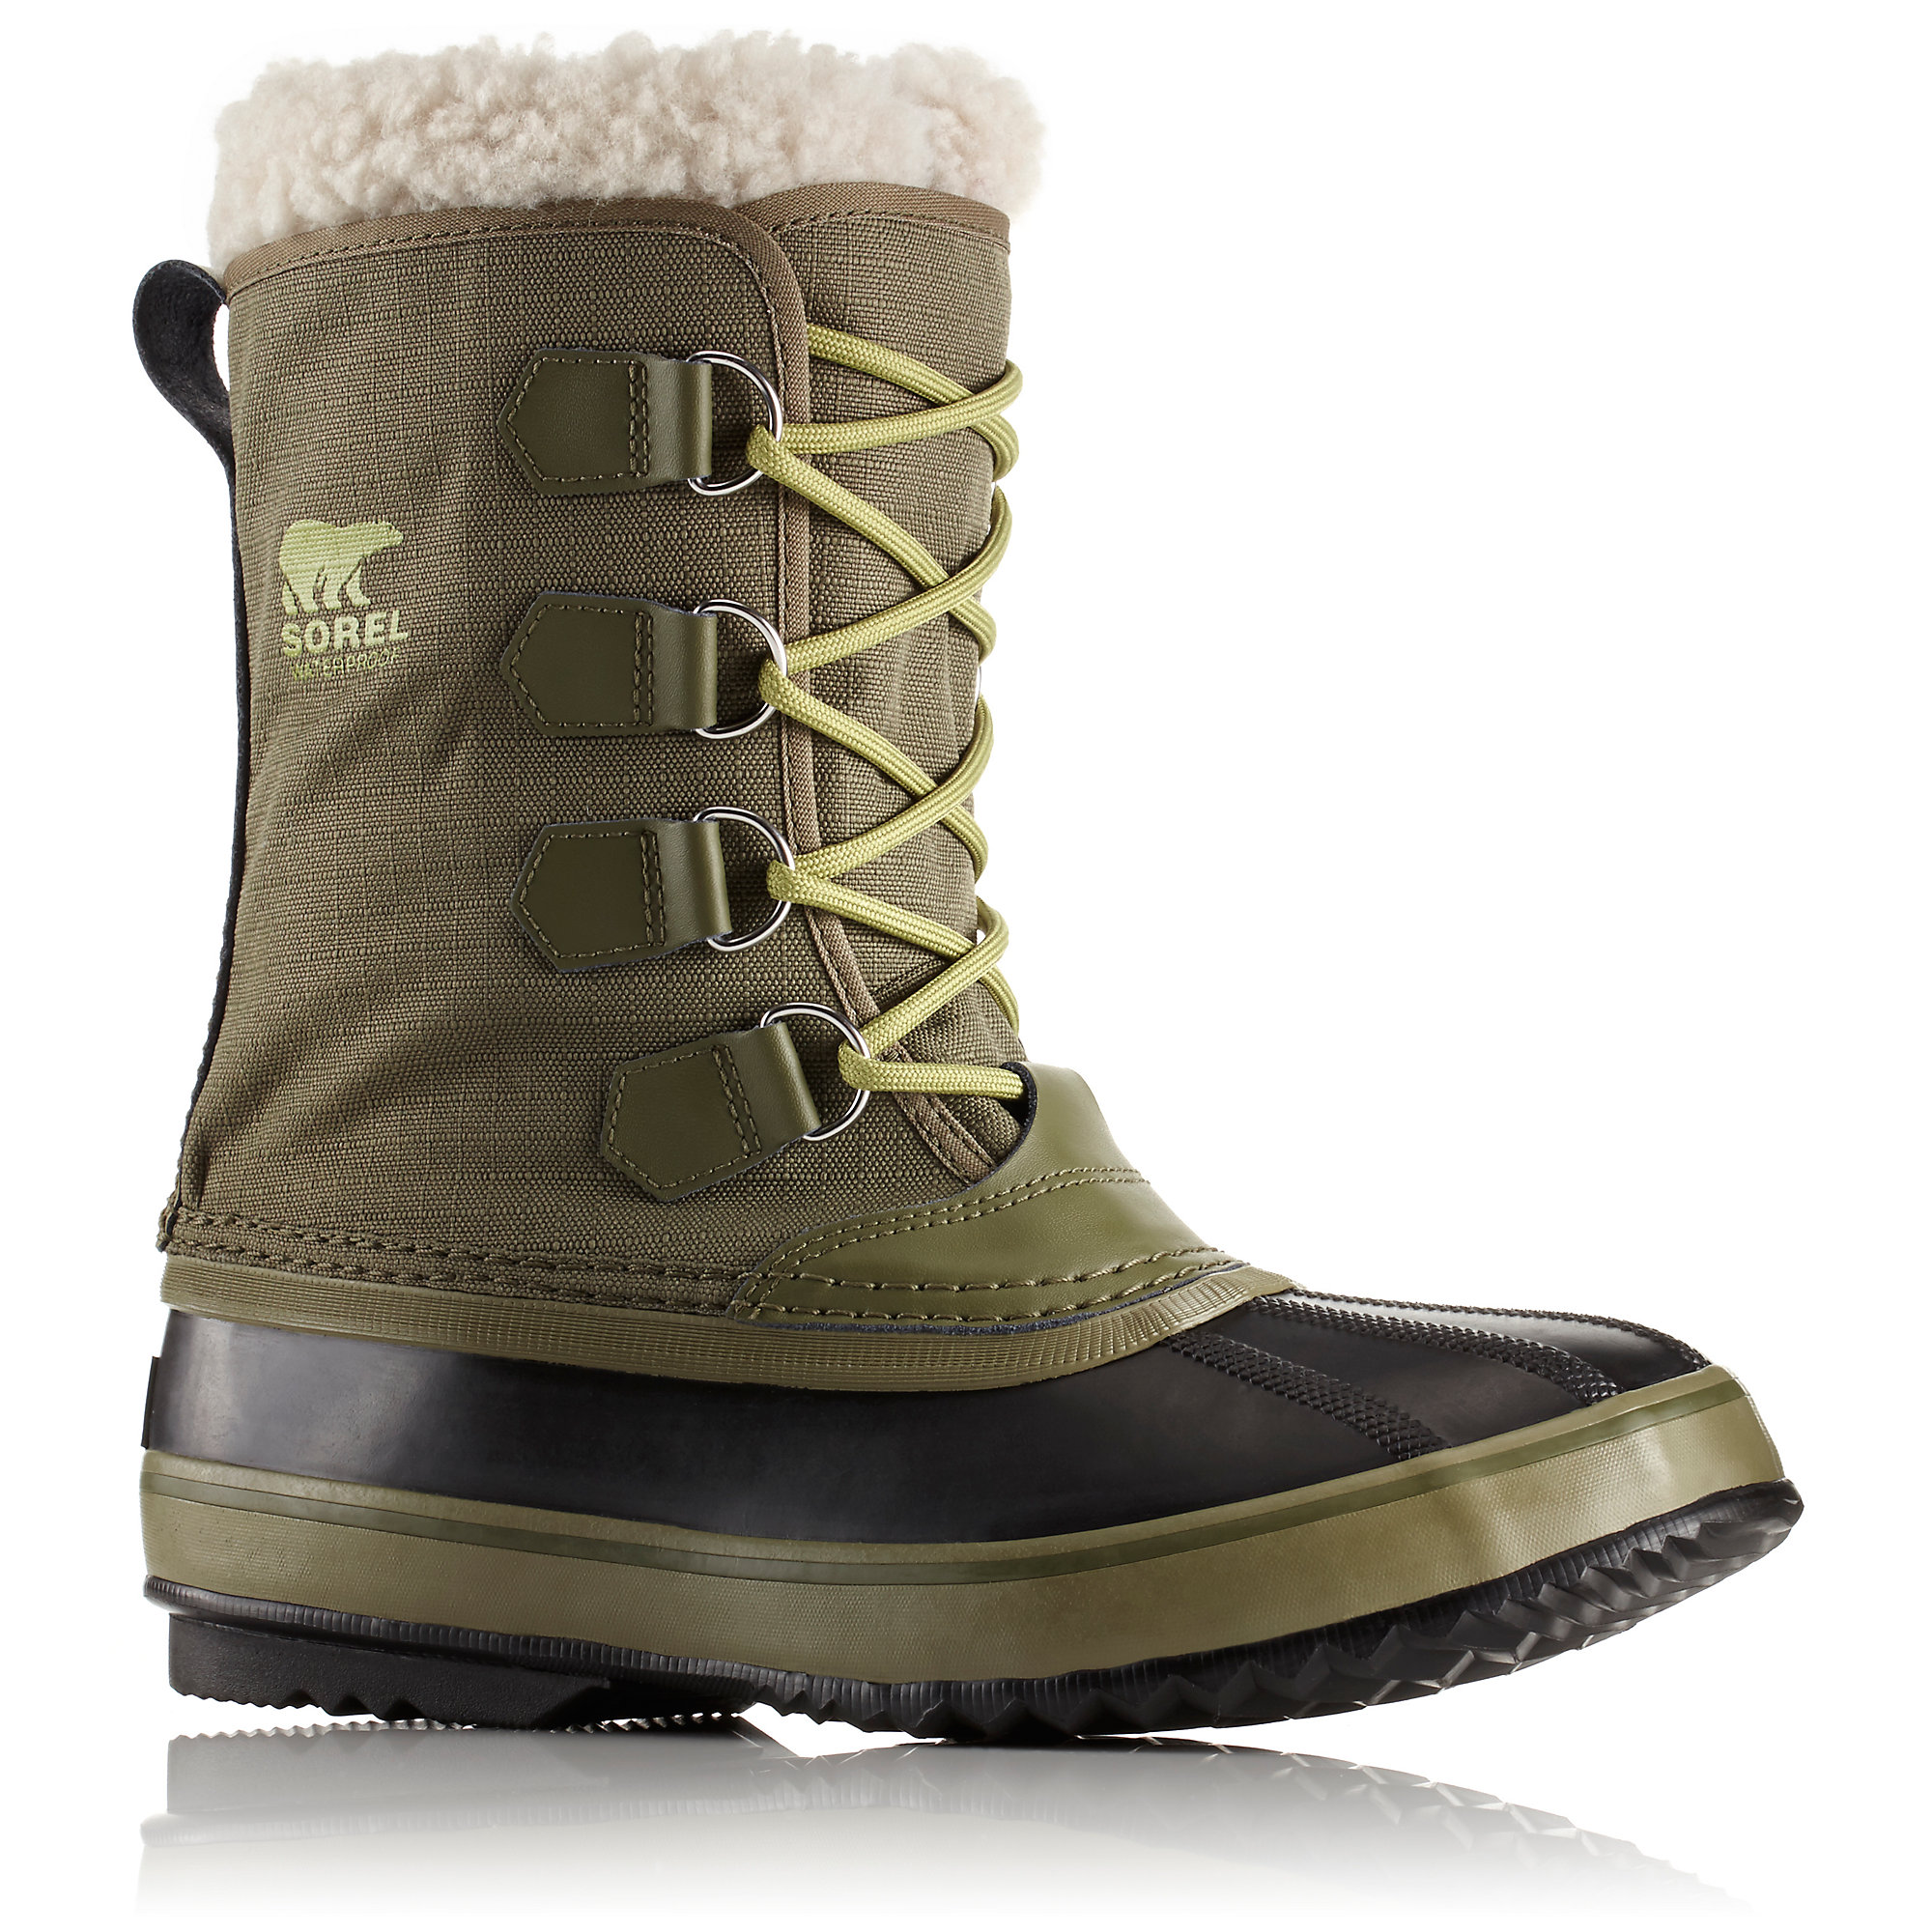 Sorel 1964 PAC  NYLON  383  7-